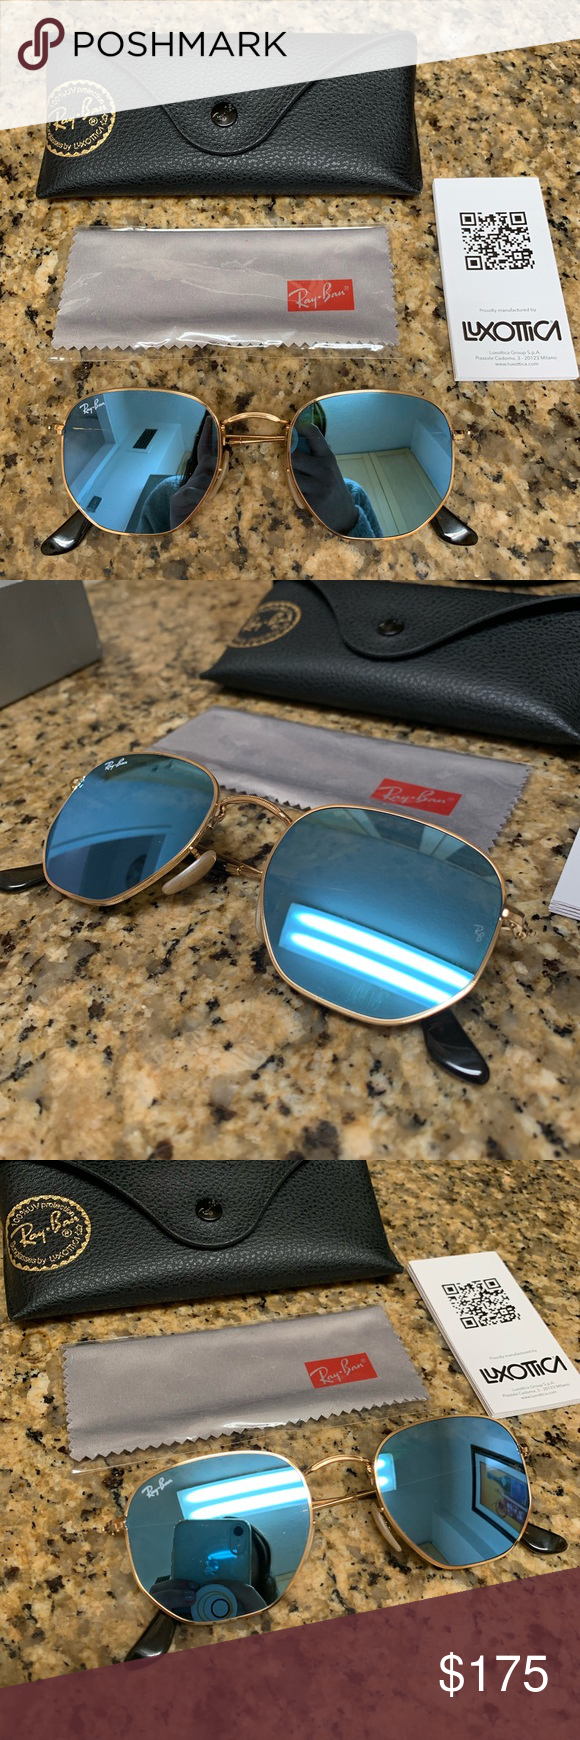 0b7c9aaf08e NEW Rayban HEXAGONAL FLAT LENSES Sunglasses BRAND NEW    NEVER TOUCHED OR  WORN RAYBAN HEXAGONAL